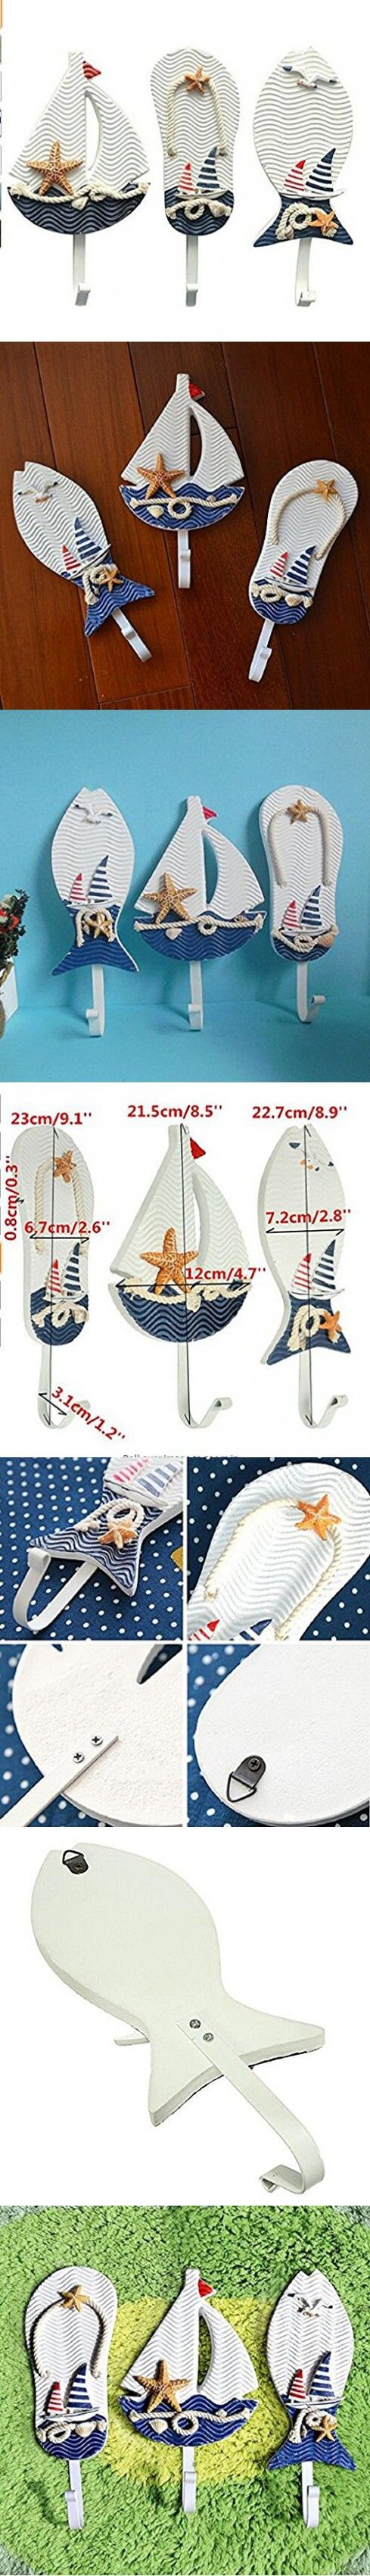 Wendin Large Art Hook Wooden Nautical Coat Hat Clothes Towel Wall Hooks Hangers Hanging Decoration Wall Mounted Key Hook Metal Home Decor 3pcs Mediterranean Style Slippers Sailing Fish Utility Hook